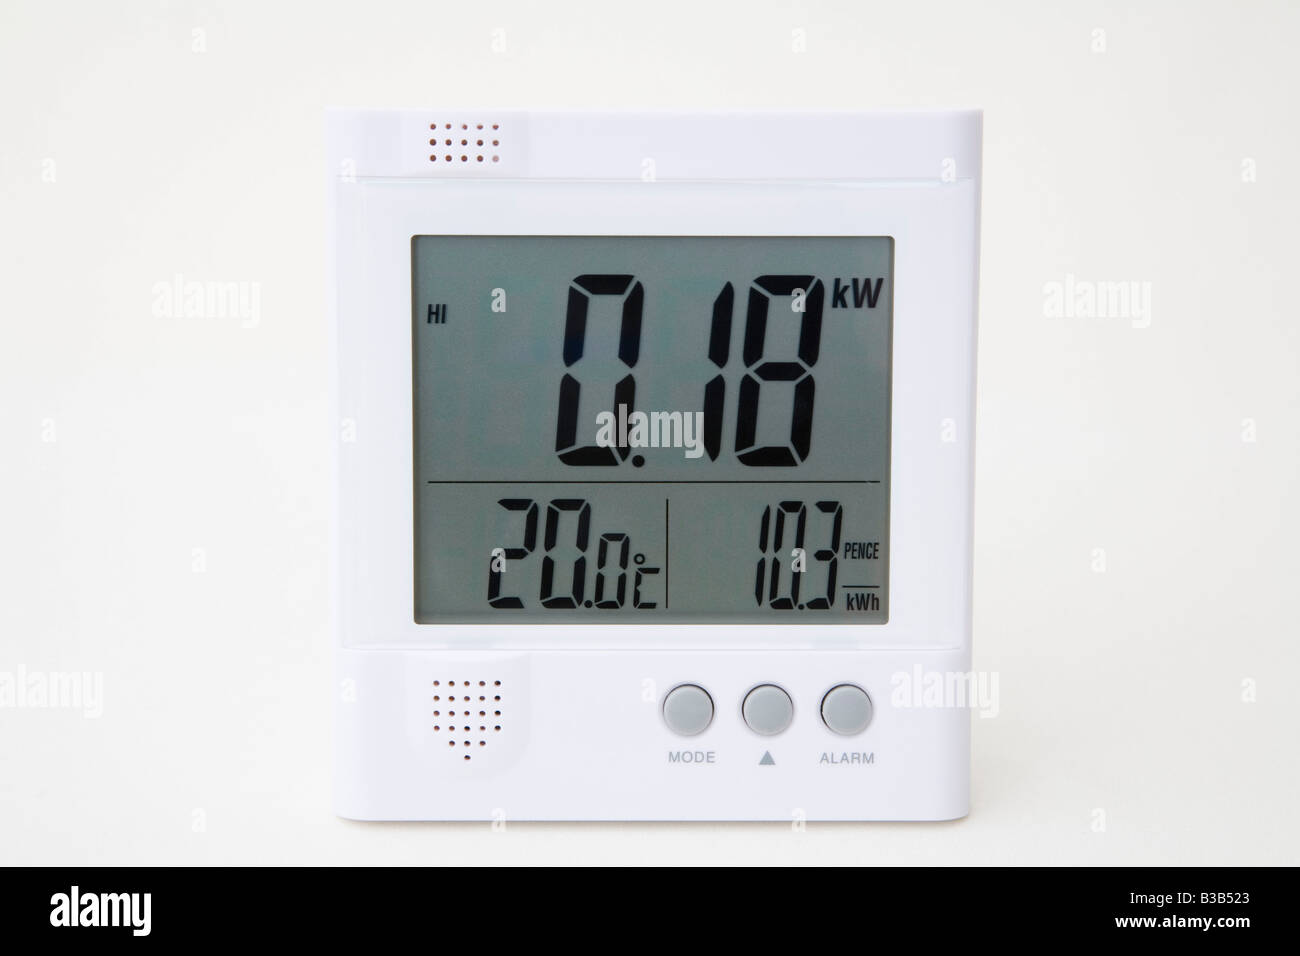 Wireless Owl electrical energy monitor with LCD display reading low number of kilowatts of domestic electricity - Stock Image